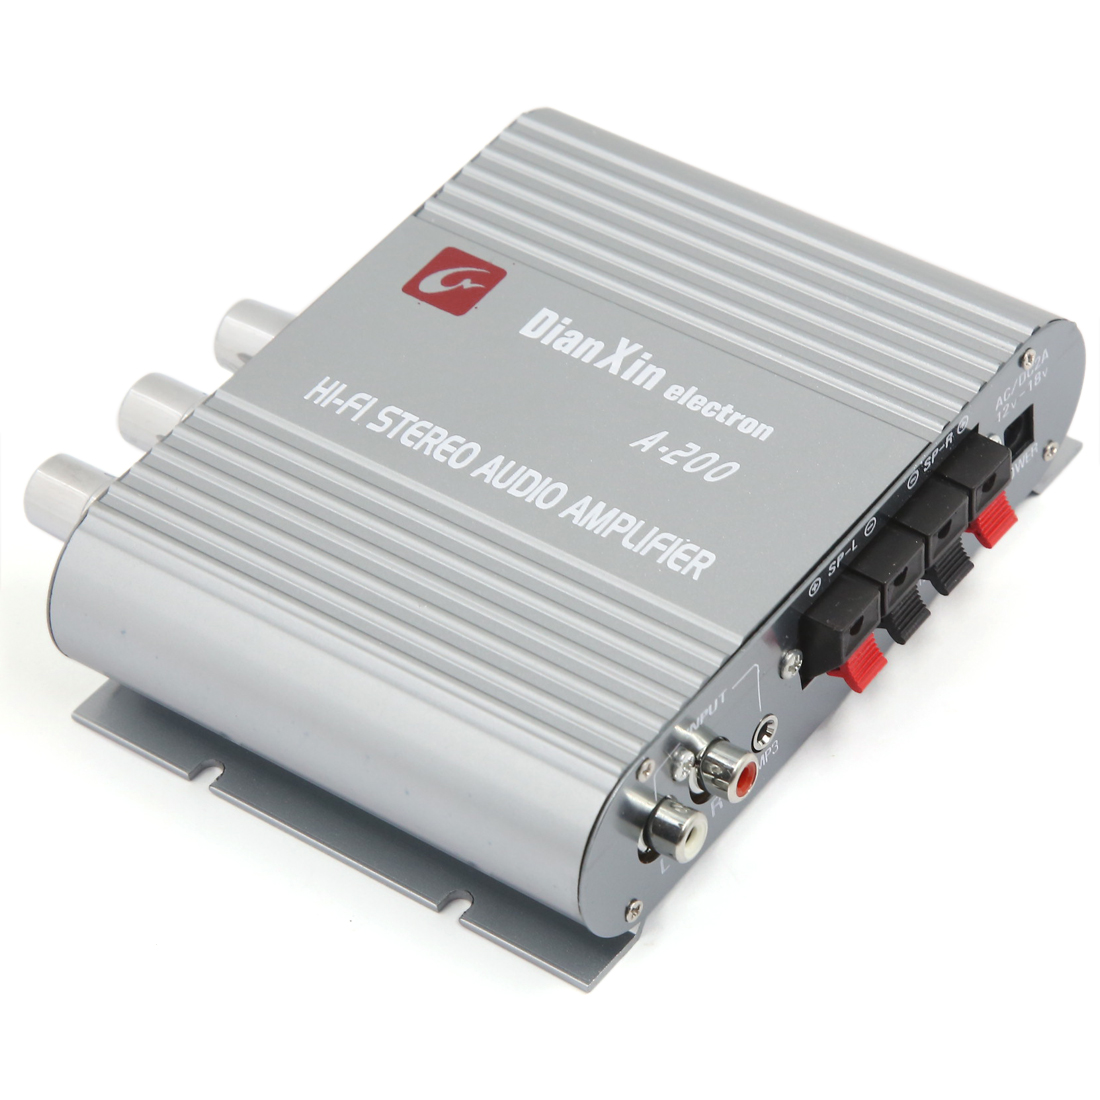 Unique Bargains Universal 85dB Mini Hi-fi 200W Stereo Audio Power Amplifier Gray for Car